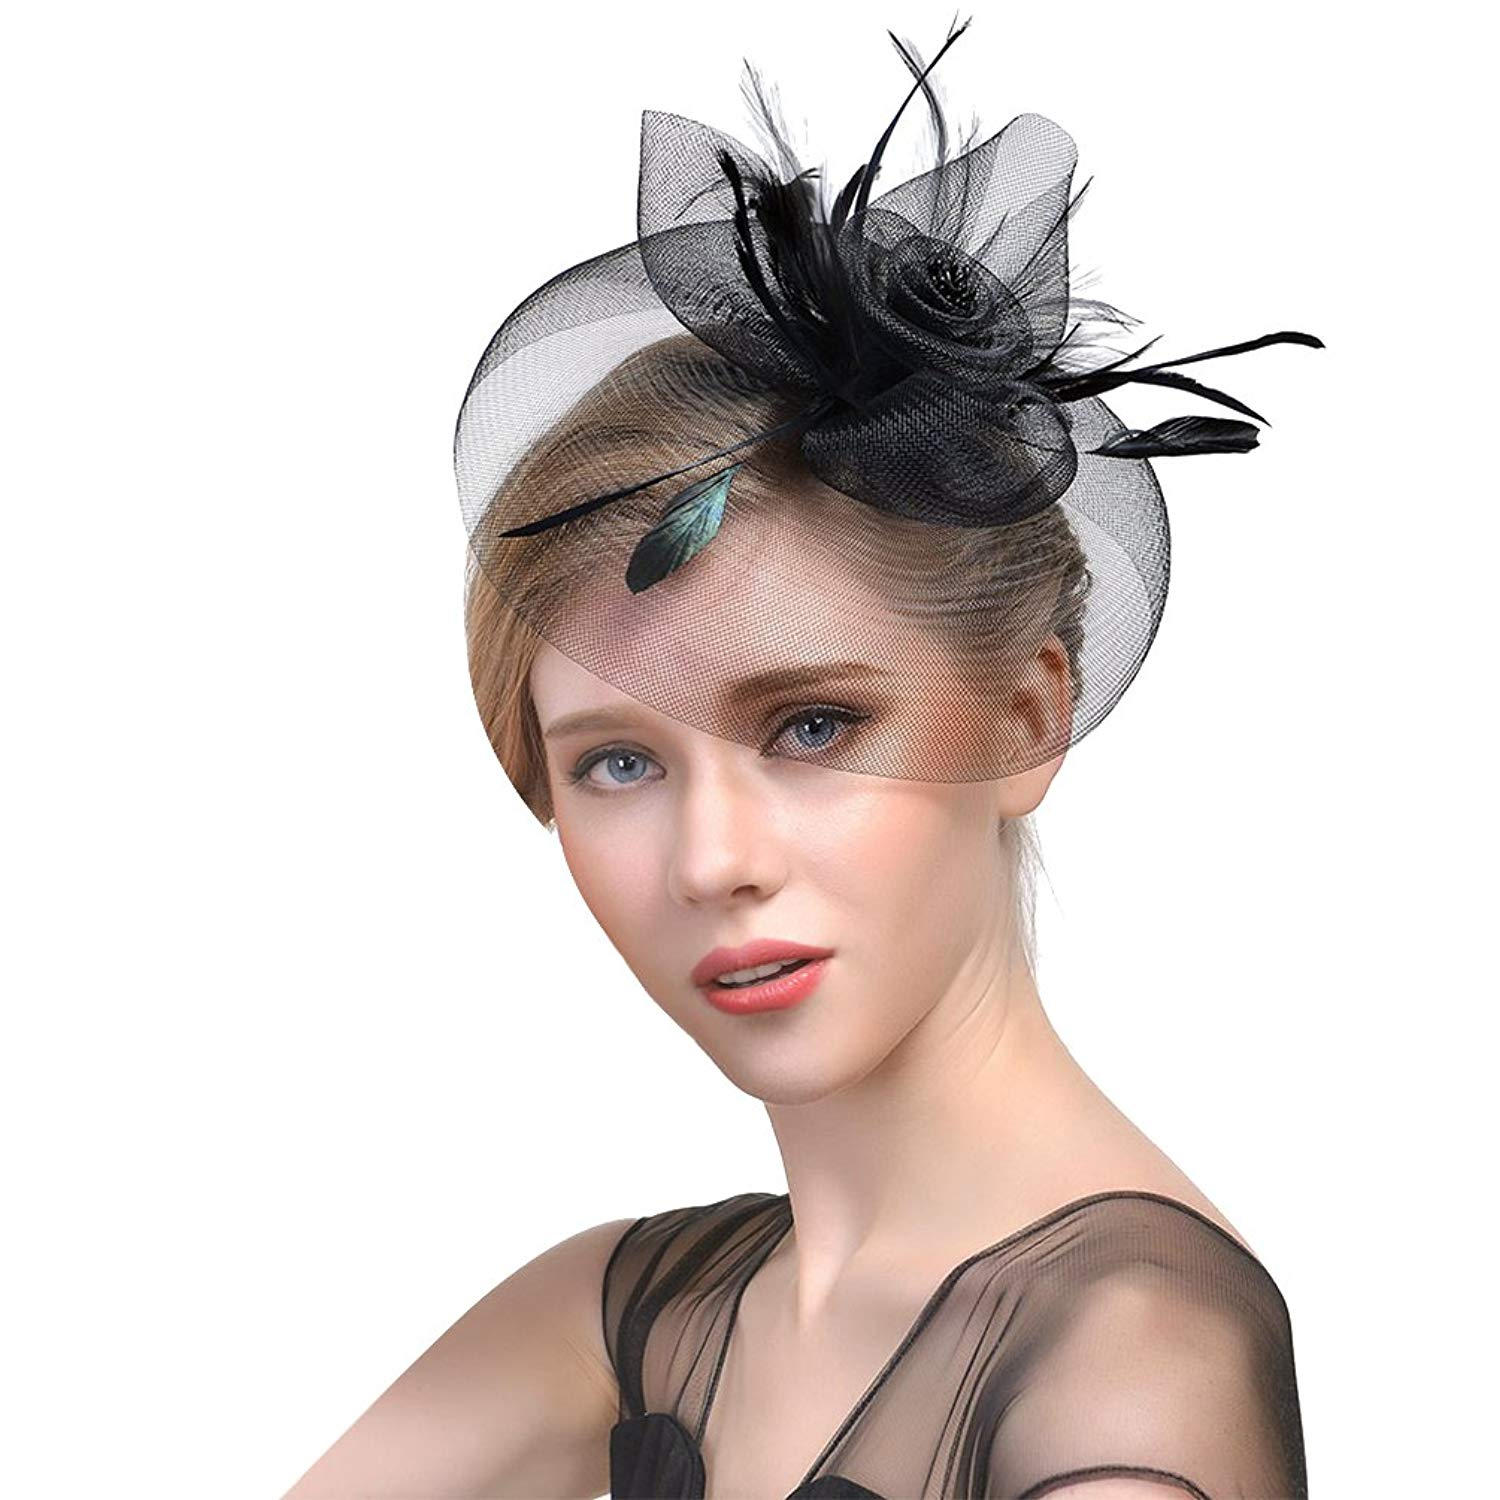 675604ea590 Get Quotations · VBIGER Fascinators Hat Women Tea Party Headwear Cocktail  Flower Mesh Feather Headband Wedding Bridal Top Hat